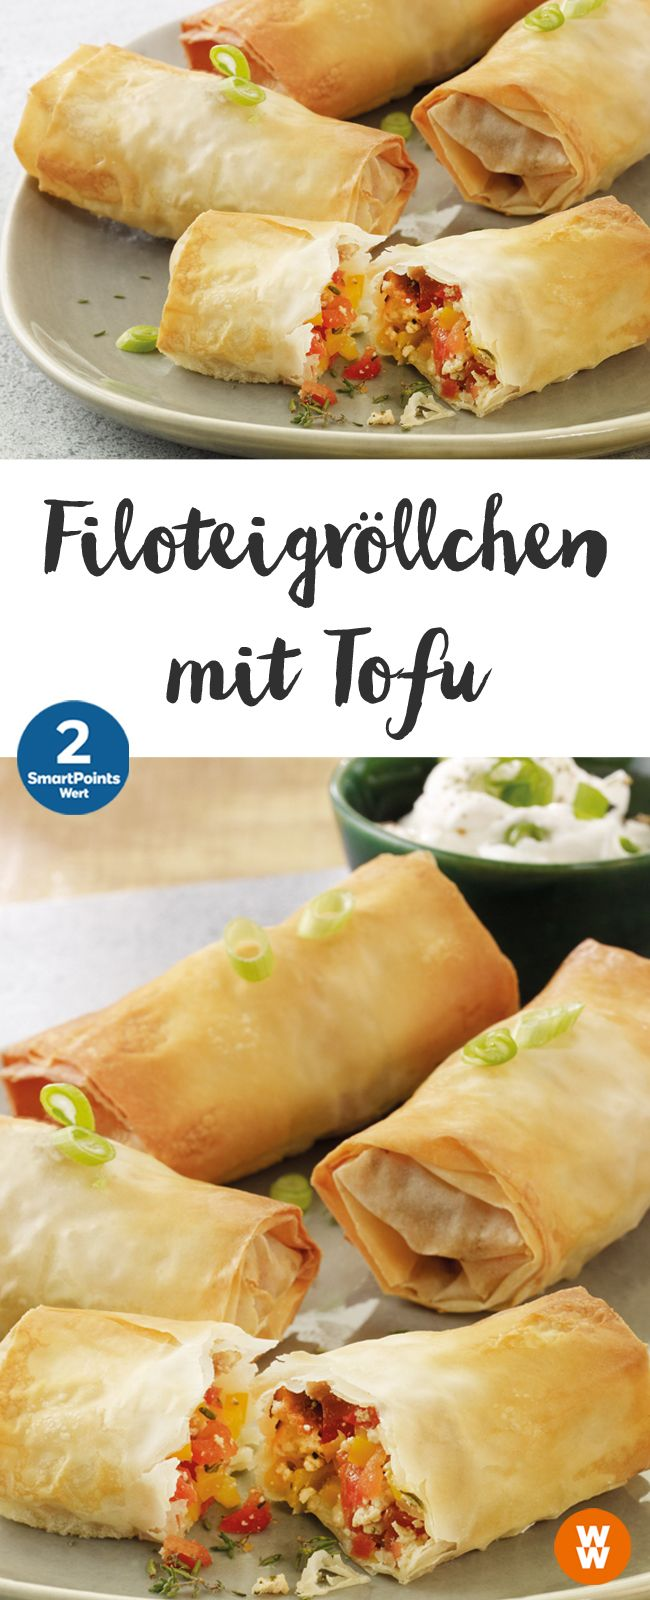 Filoteigröllchen mit Tofu | 8 Portionen, 2 SmartPoints/Portion, Weight Watchers, vegetarisch